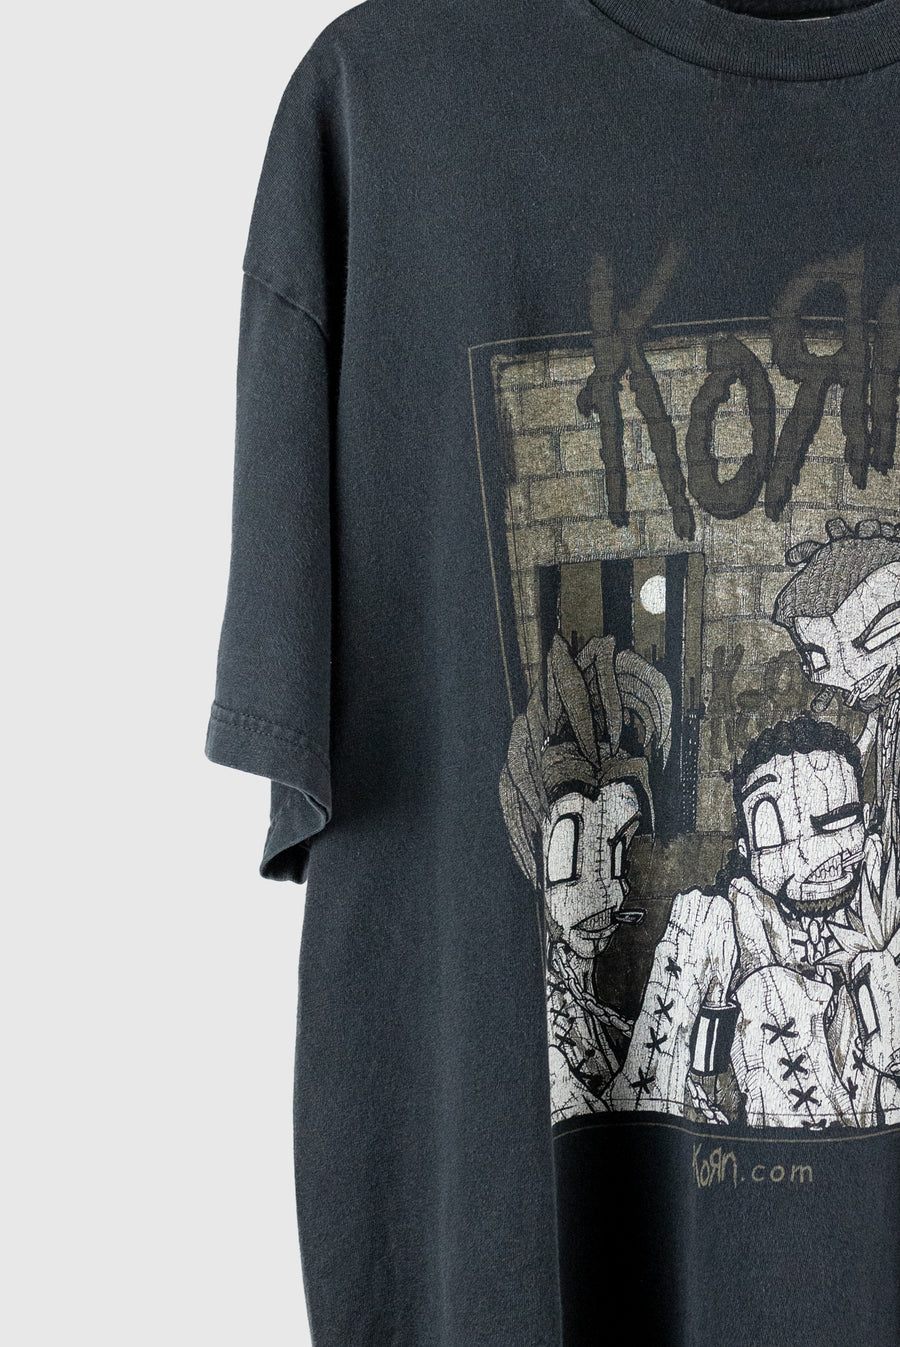 2000 Korn Sick and Twisted Tour Tee